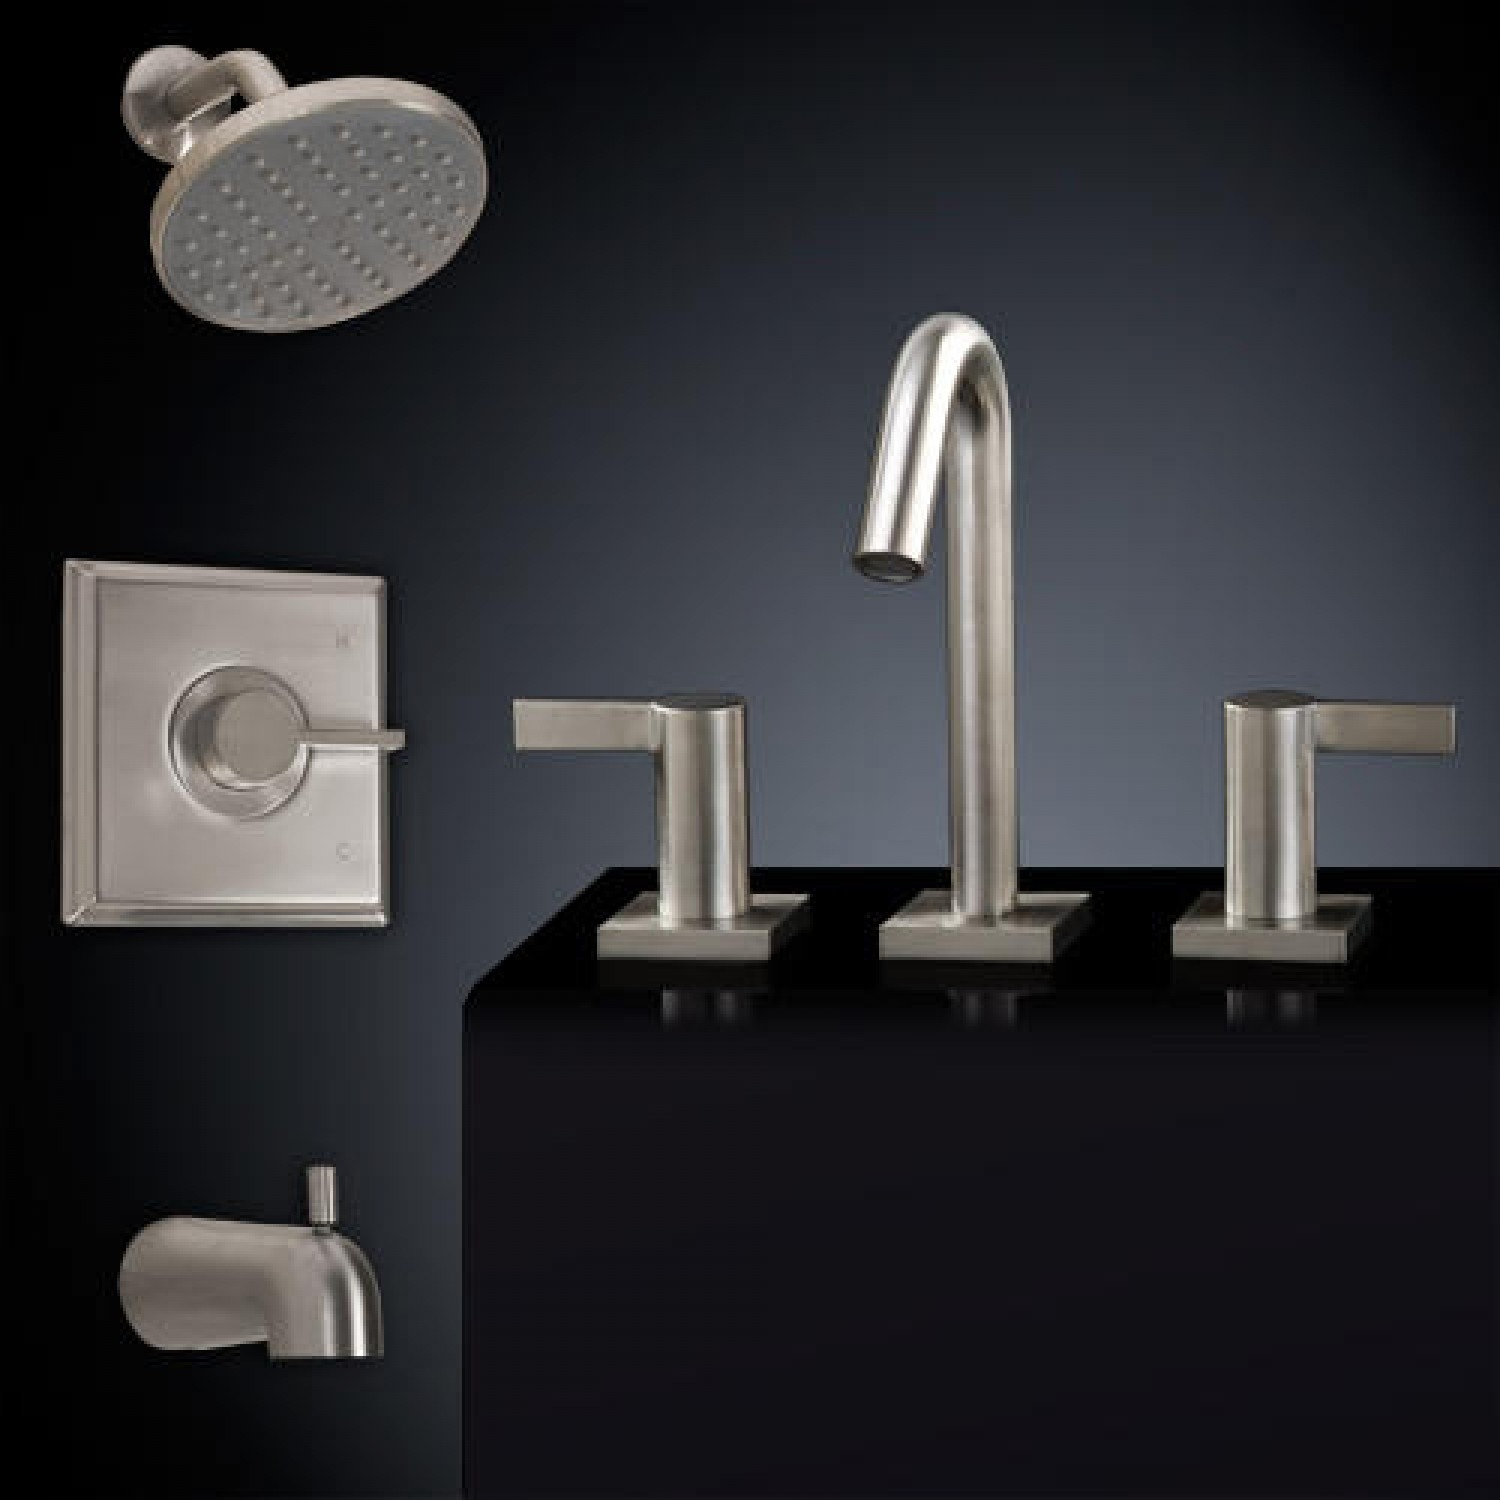 Ideas, flair tub shower set 2 with widespread sink faucet bathroom with regard to sizing 1500 x 1500  .